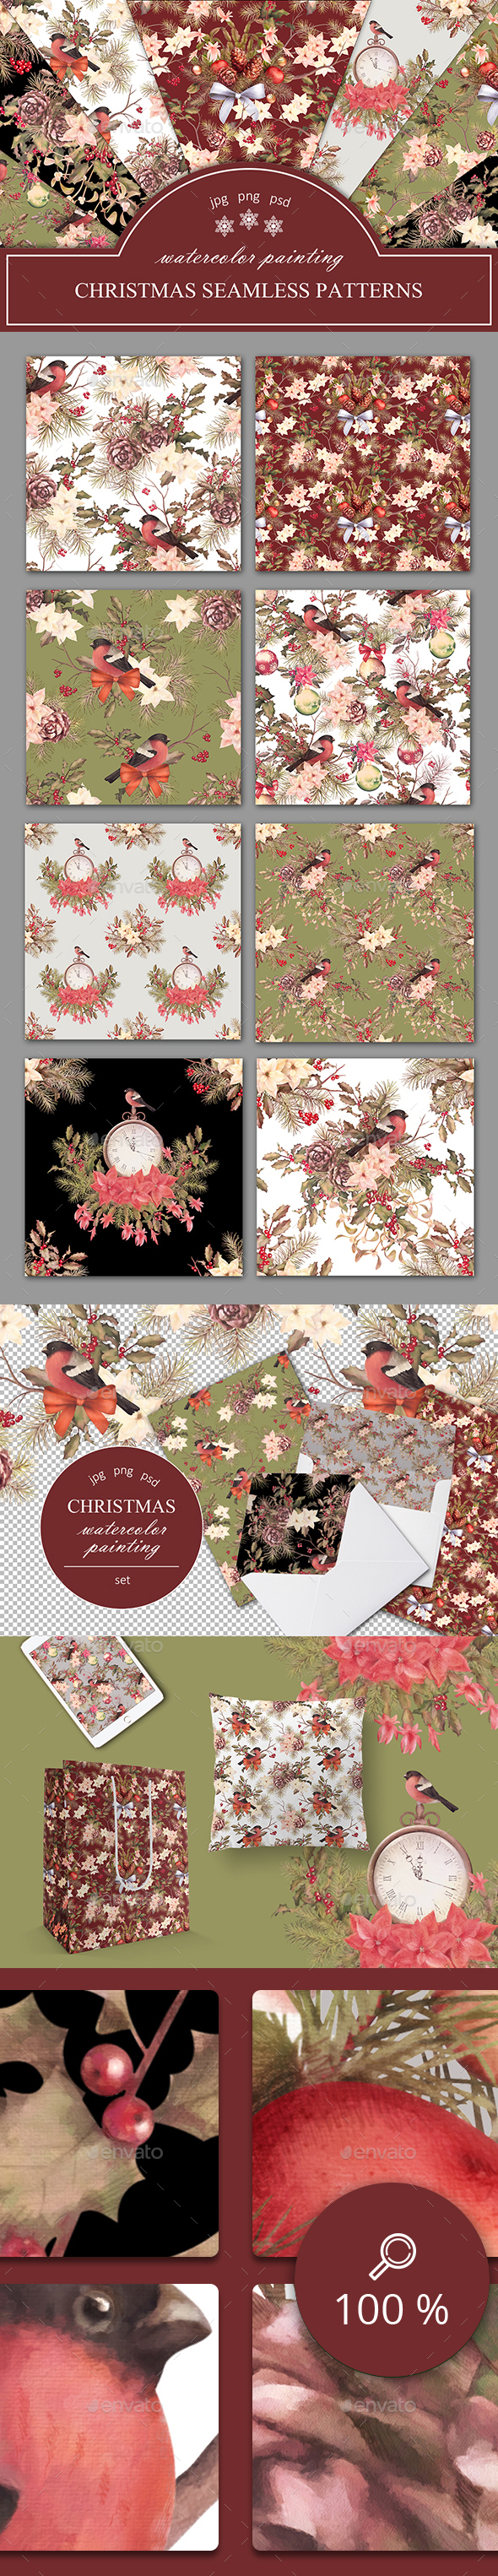 Christmas Seamless Patterns - Patterns Backgrounds